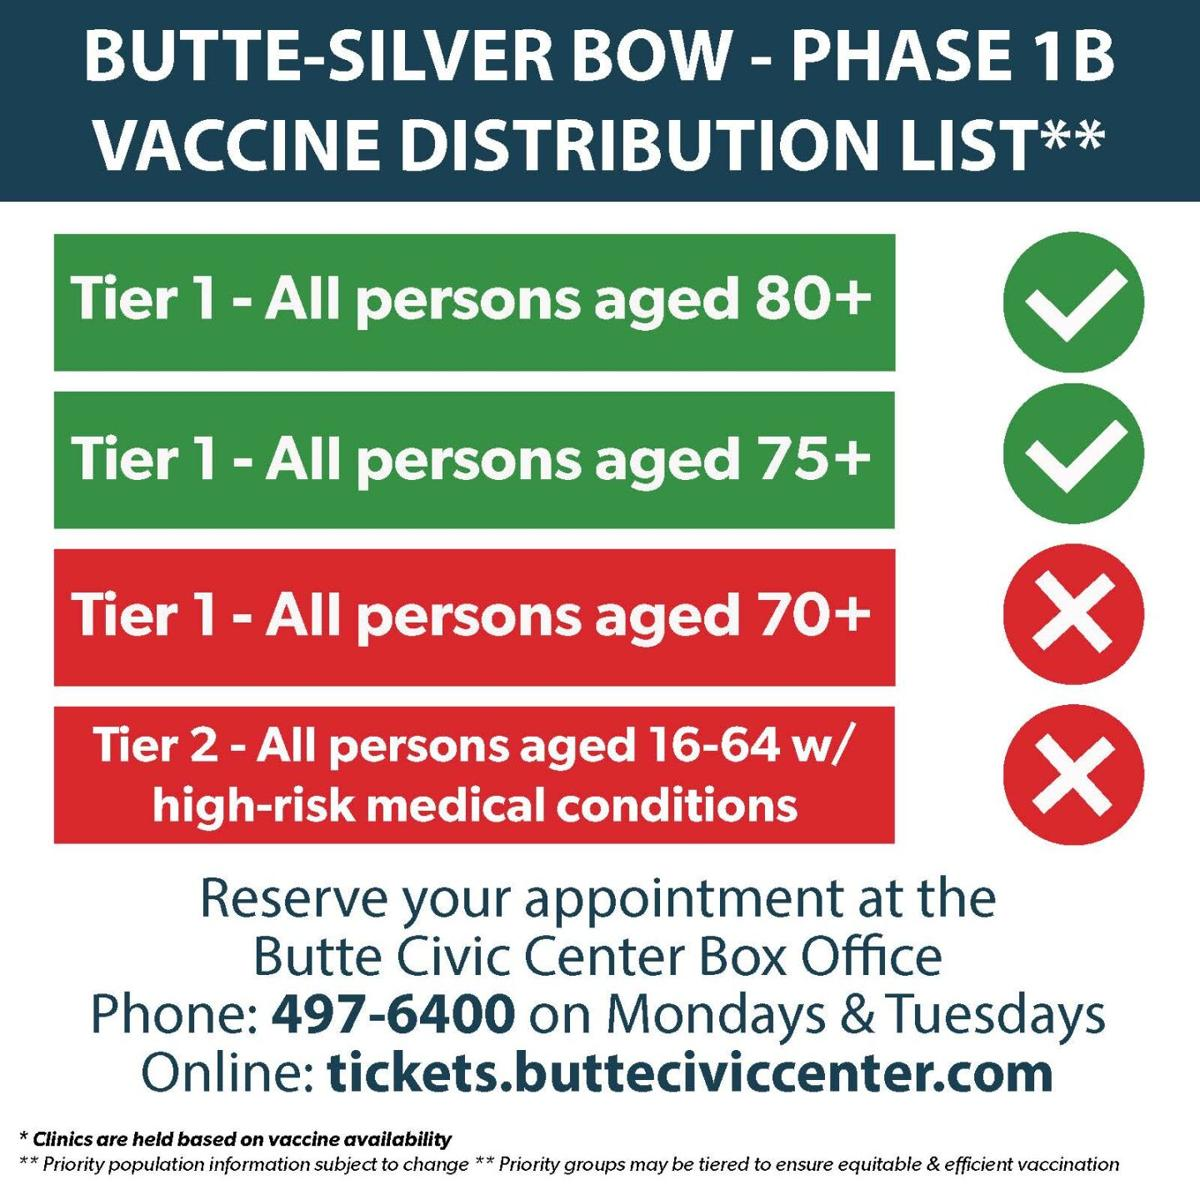 Butte-Silver Bow Phase 1B Vaccination Distribution List